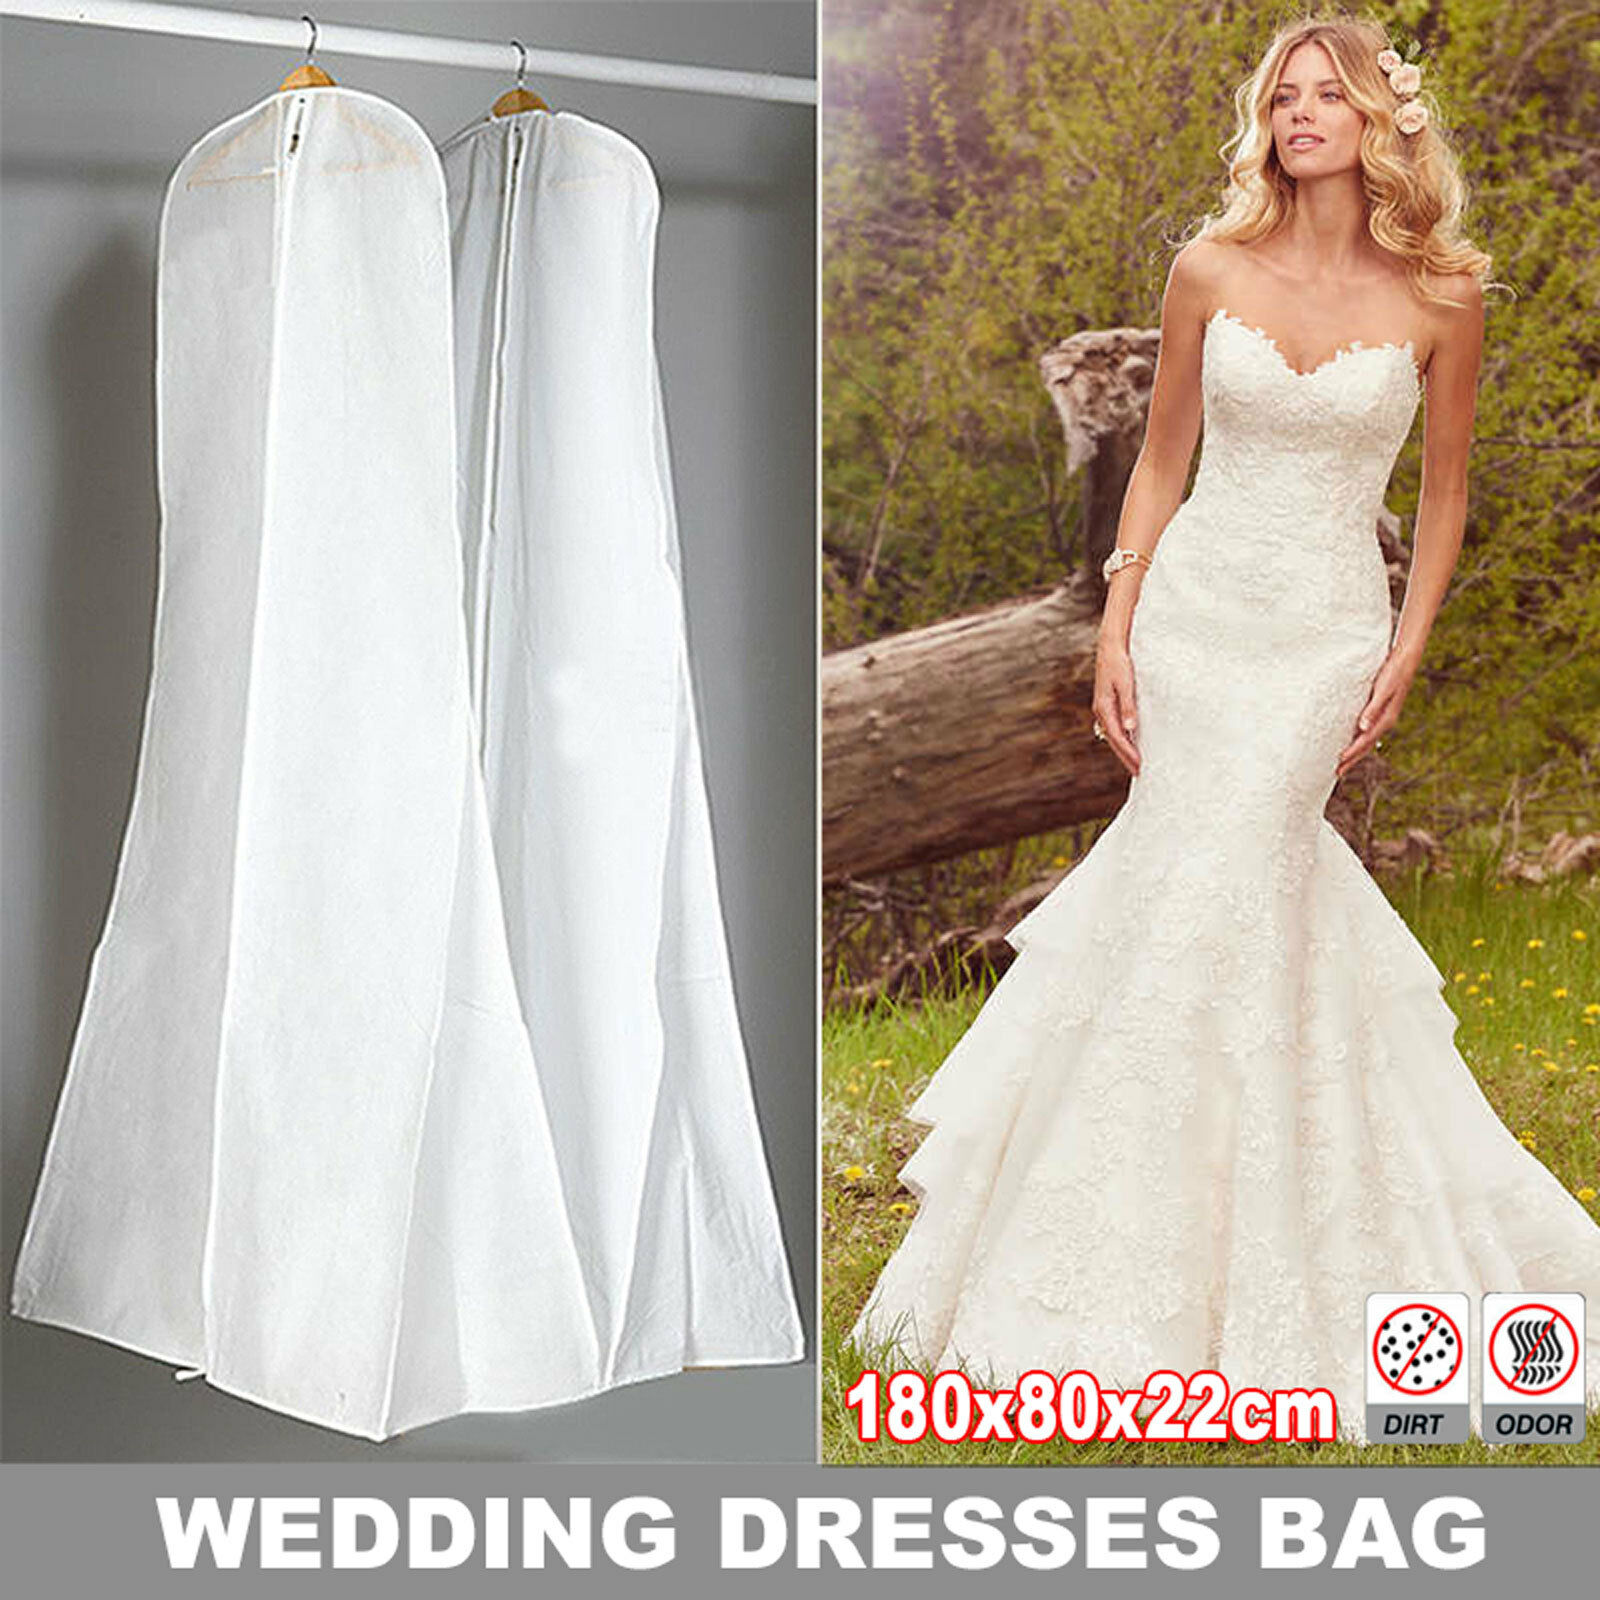 White Dustproof Wedding Dress Storage Clothes Bag Cover For Bridal Gown Garment Ebay,Wedding Dress From Dhgate Review